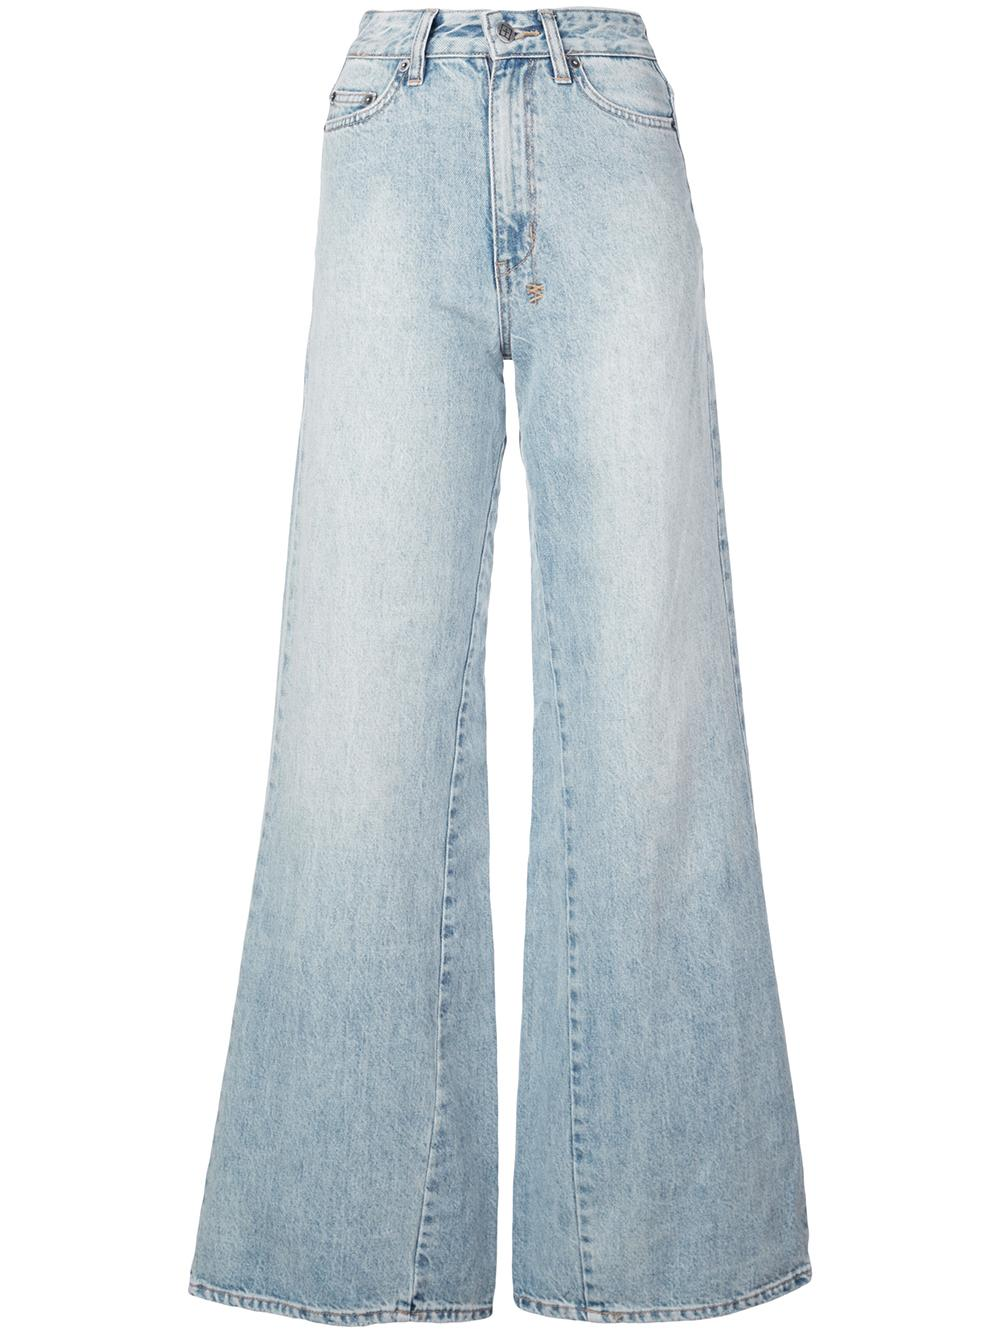 Kicker Jean Skream Item # 5000004224